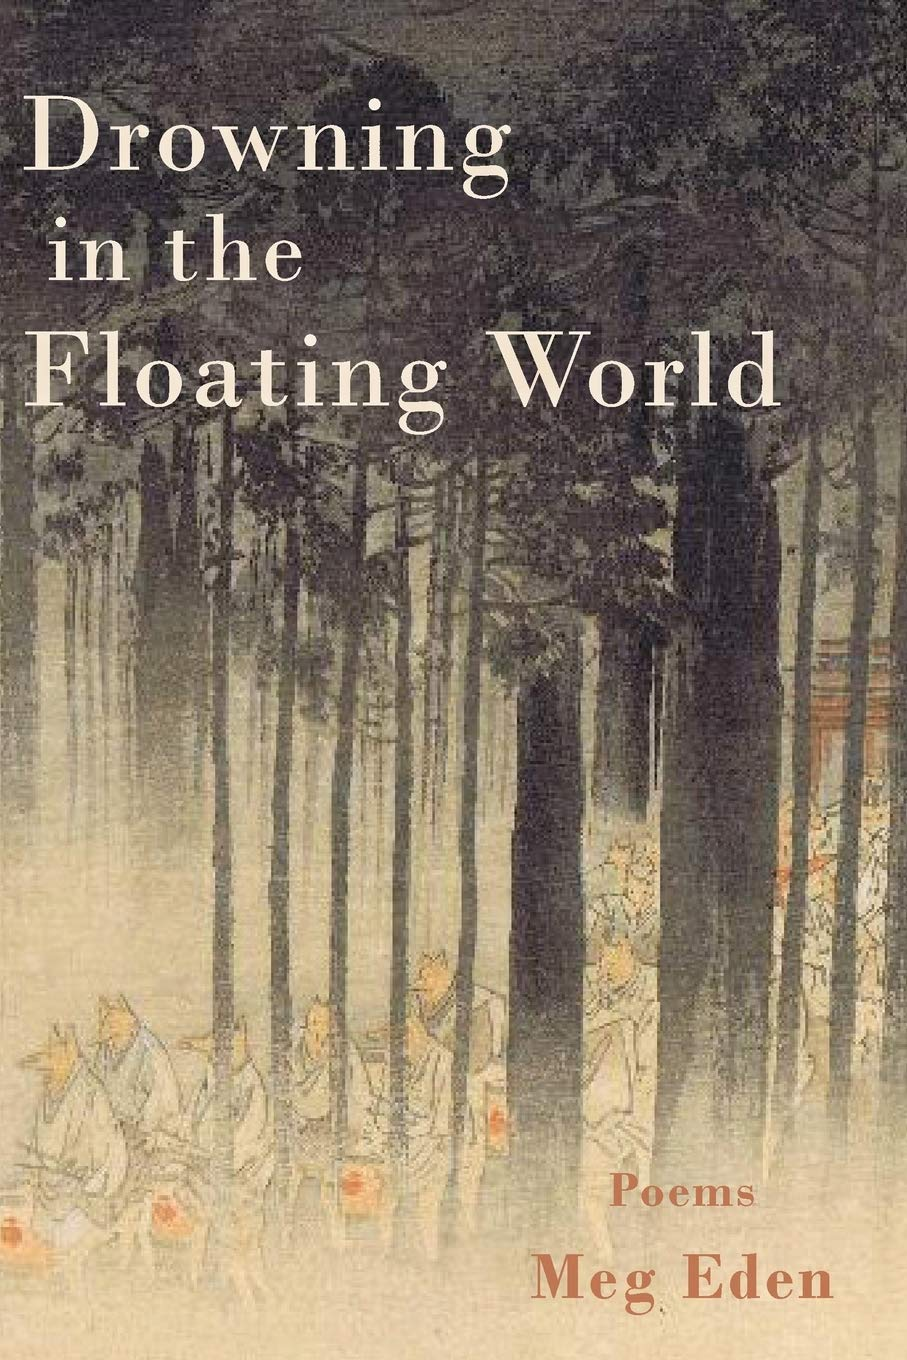 Image result for drowning in the floating world